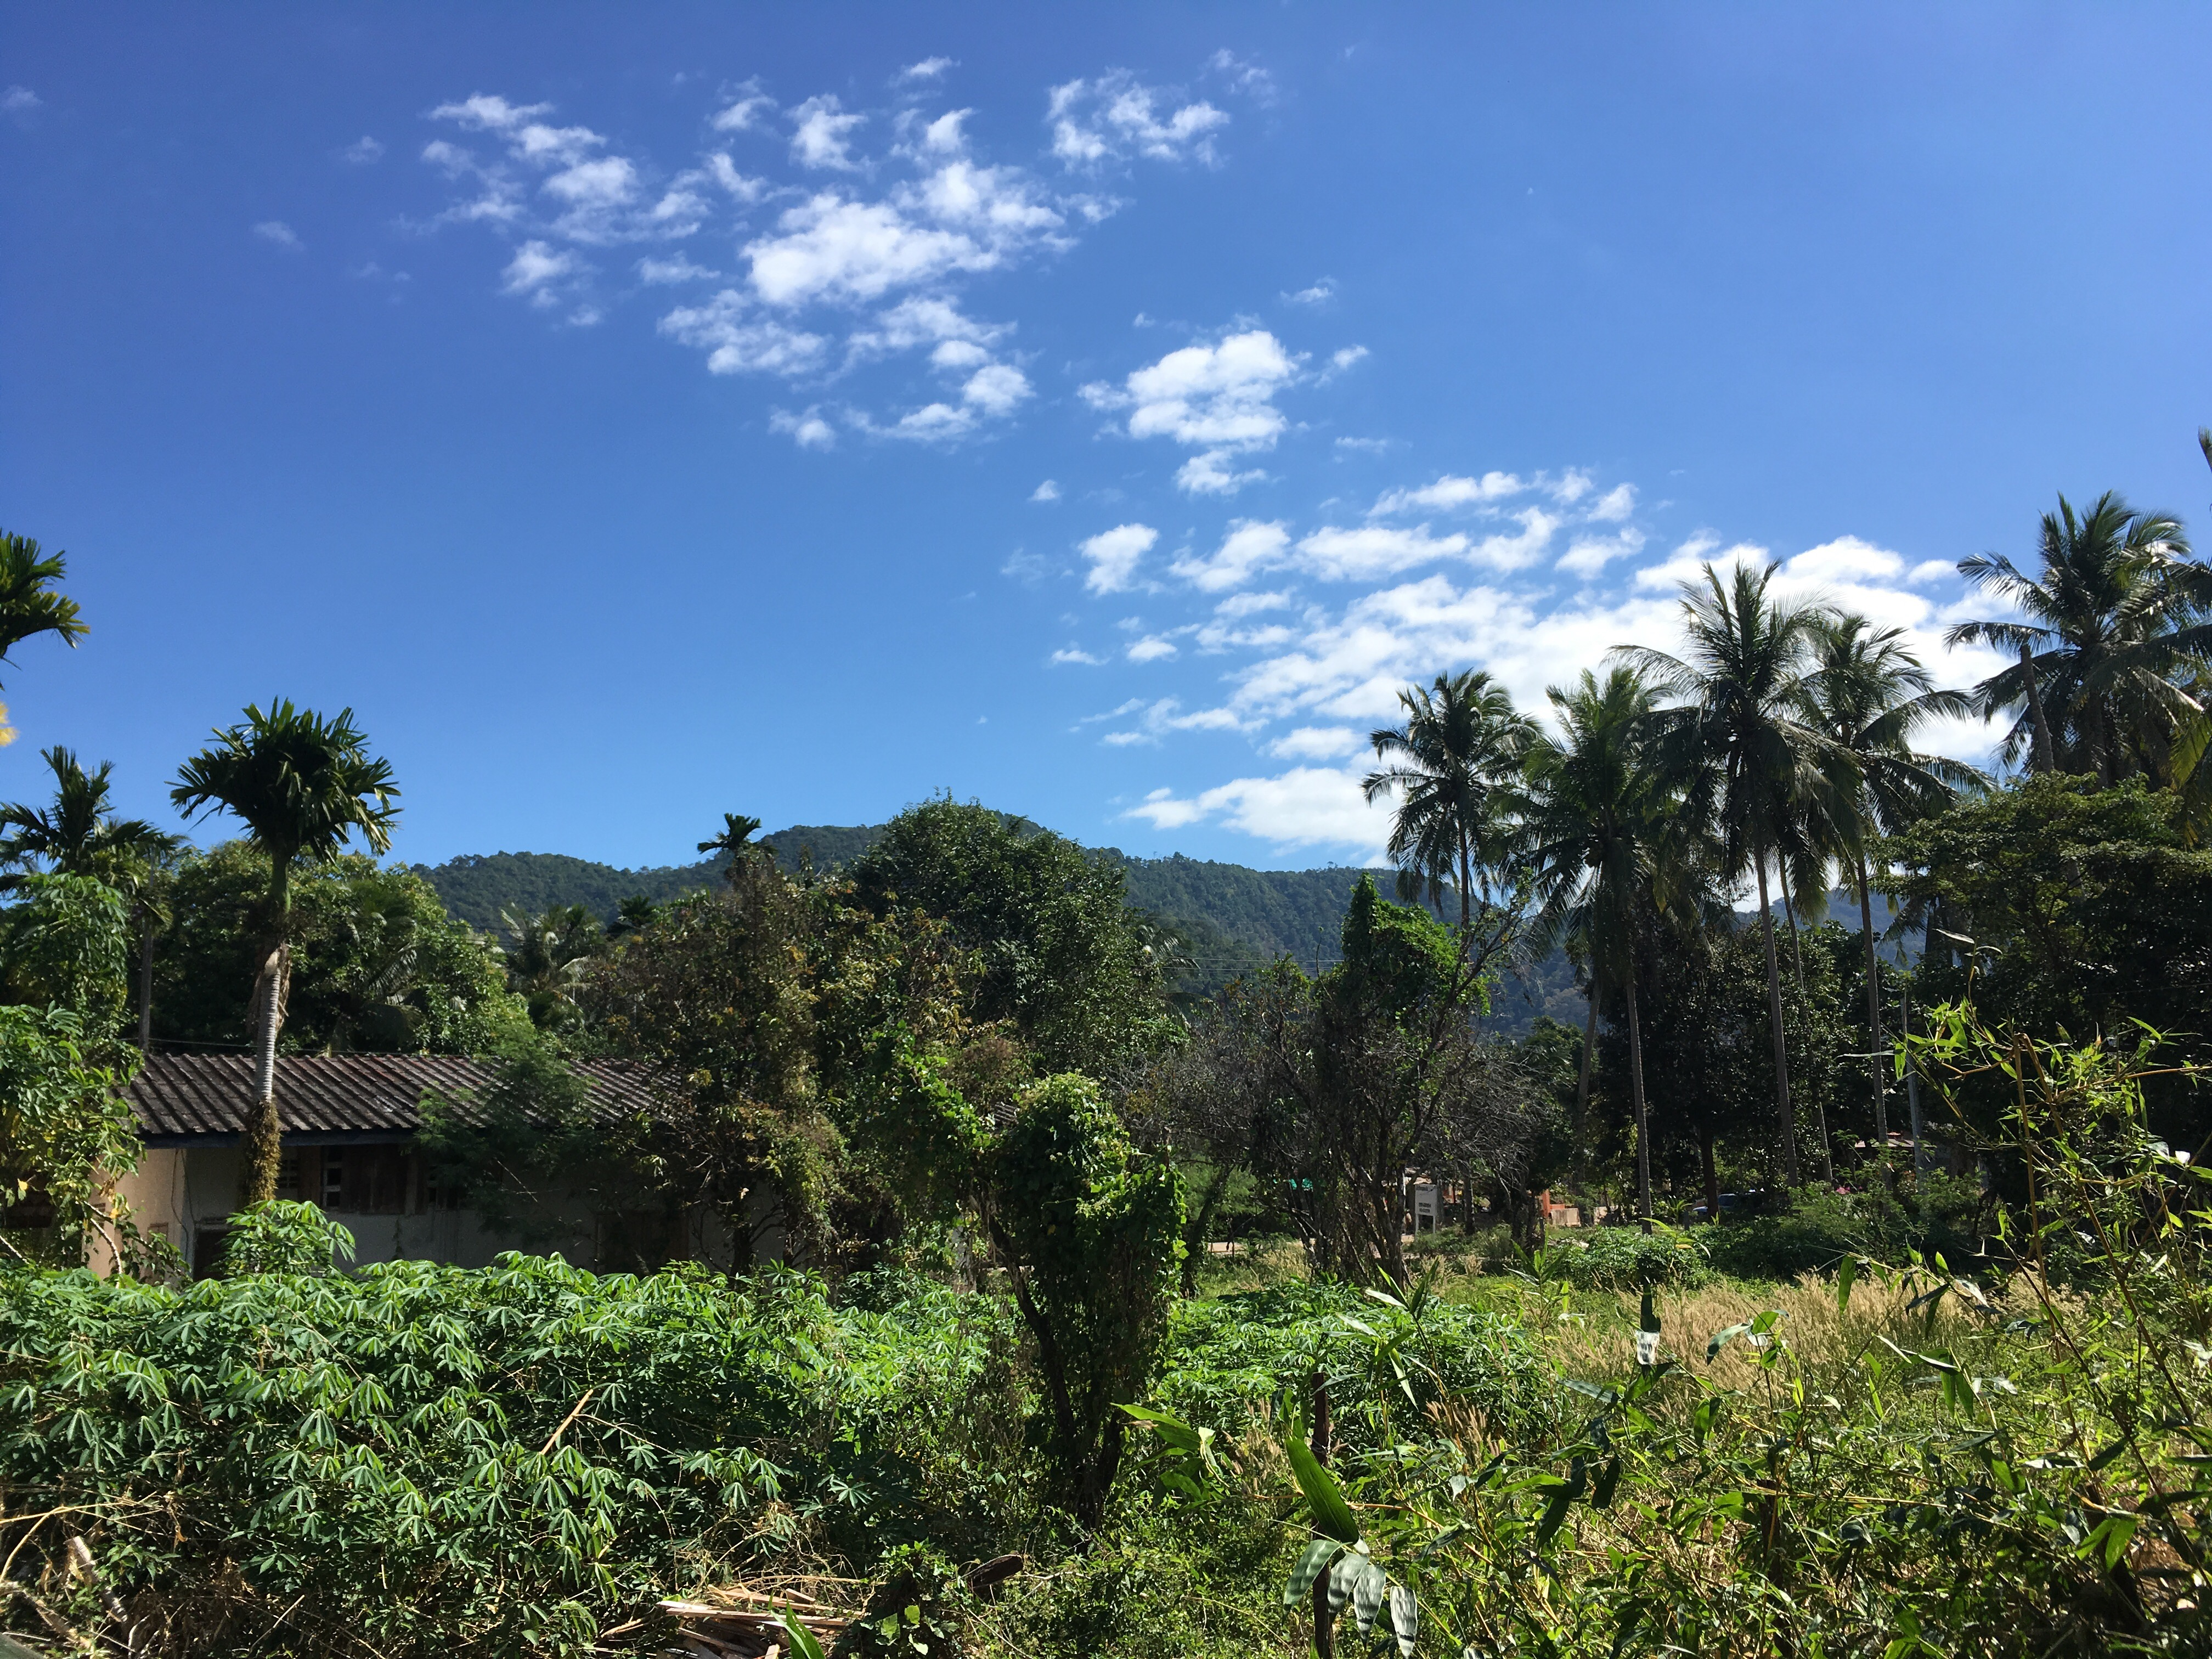 Klong Son Valley. Getting around Koh Chang